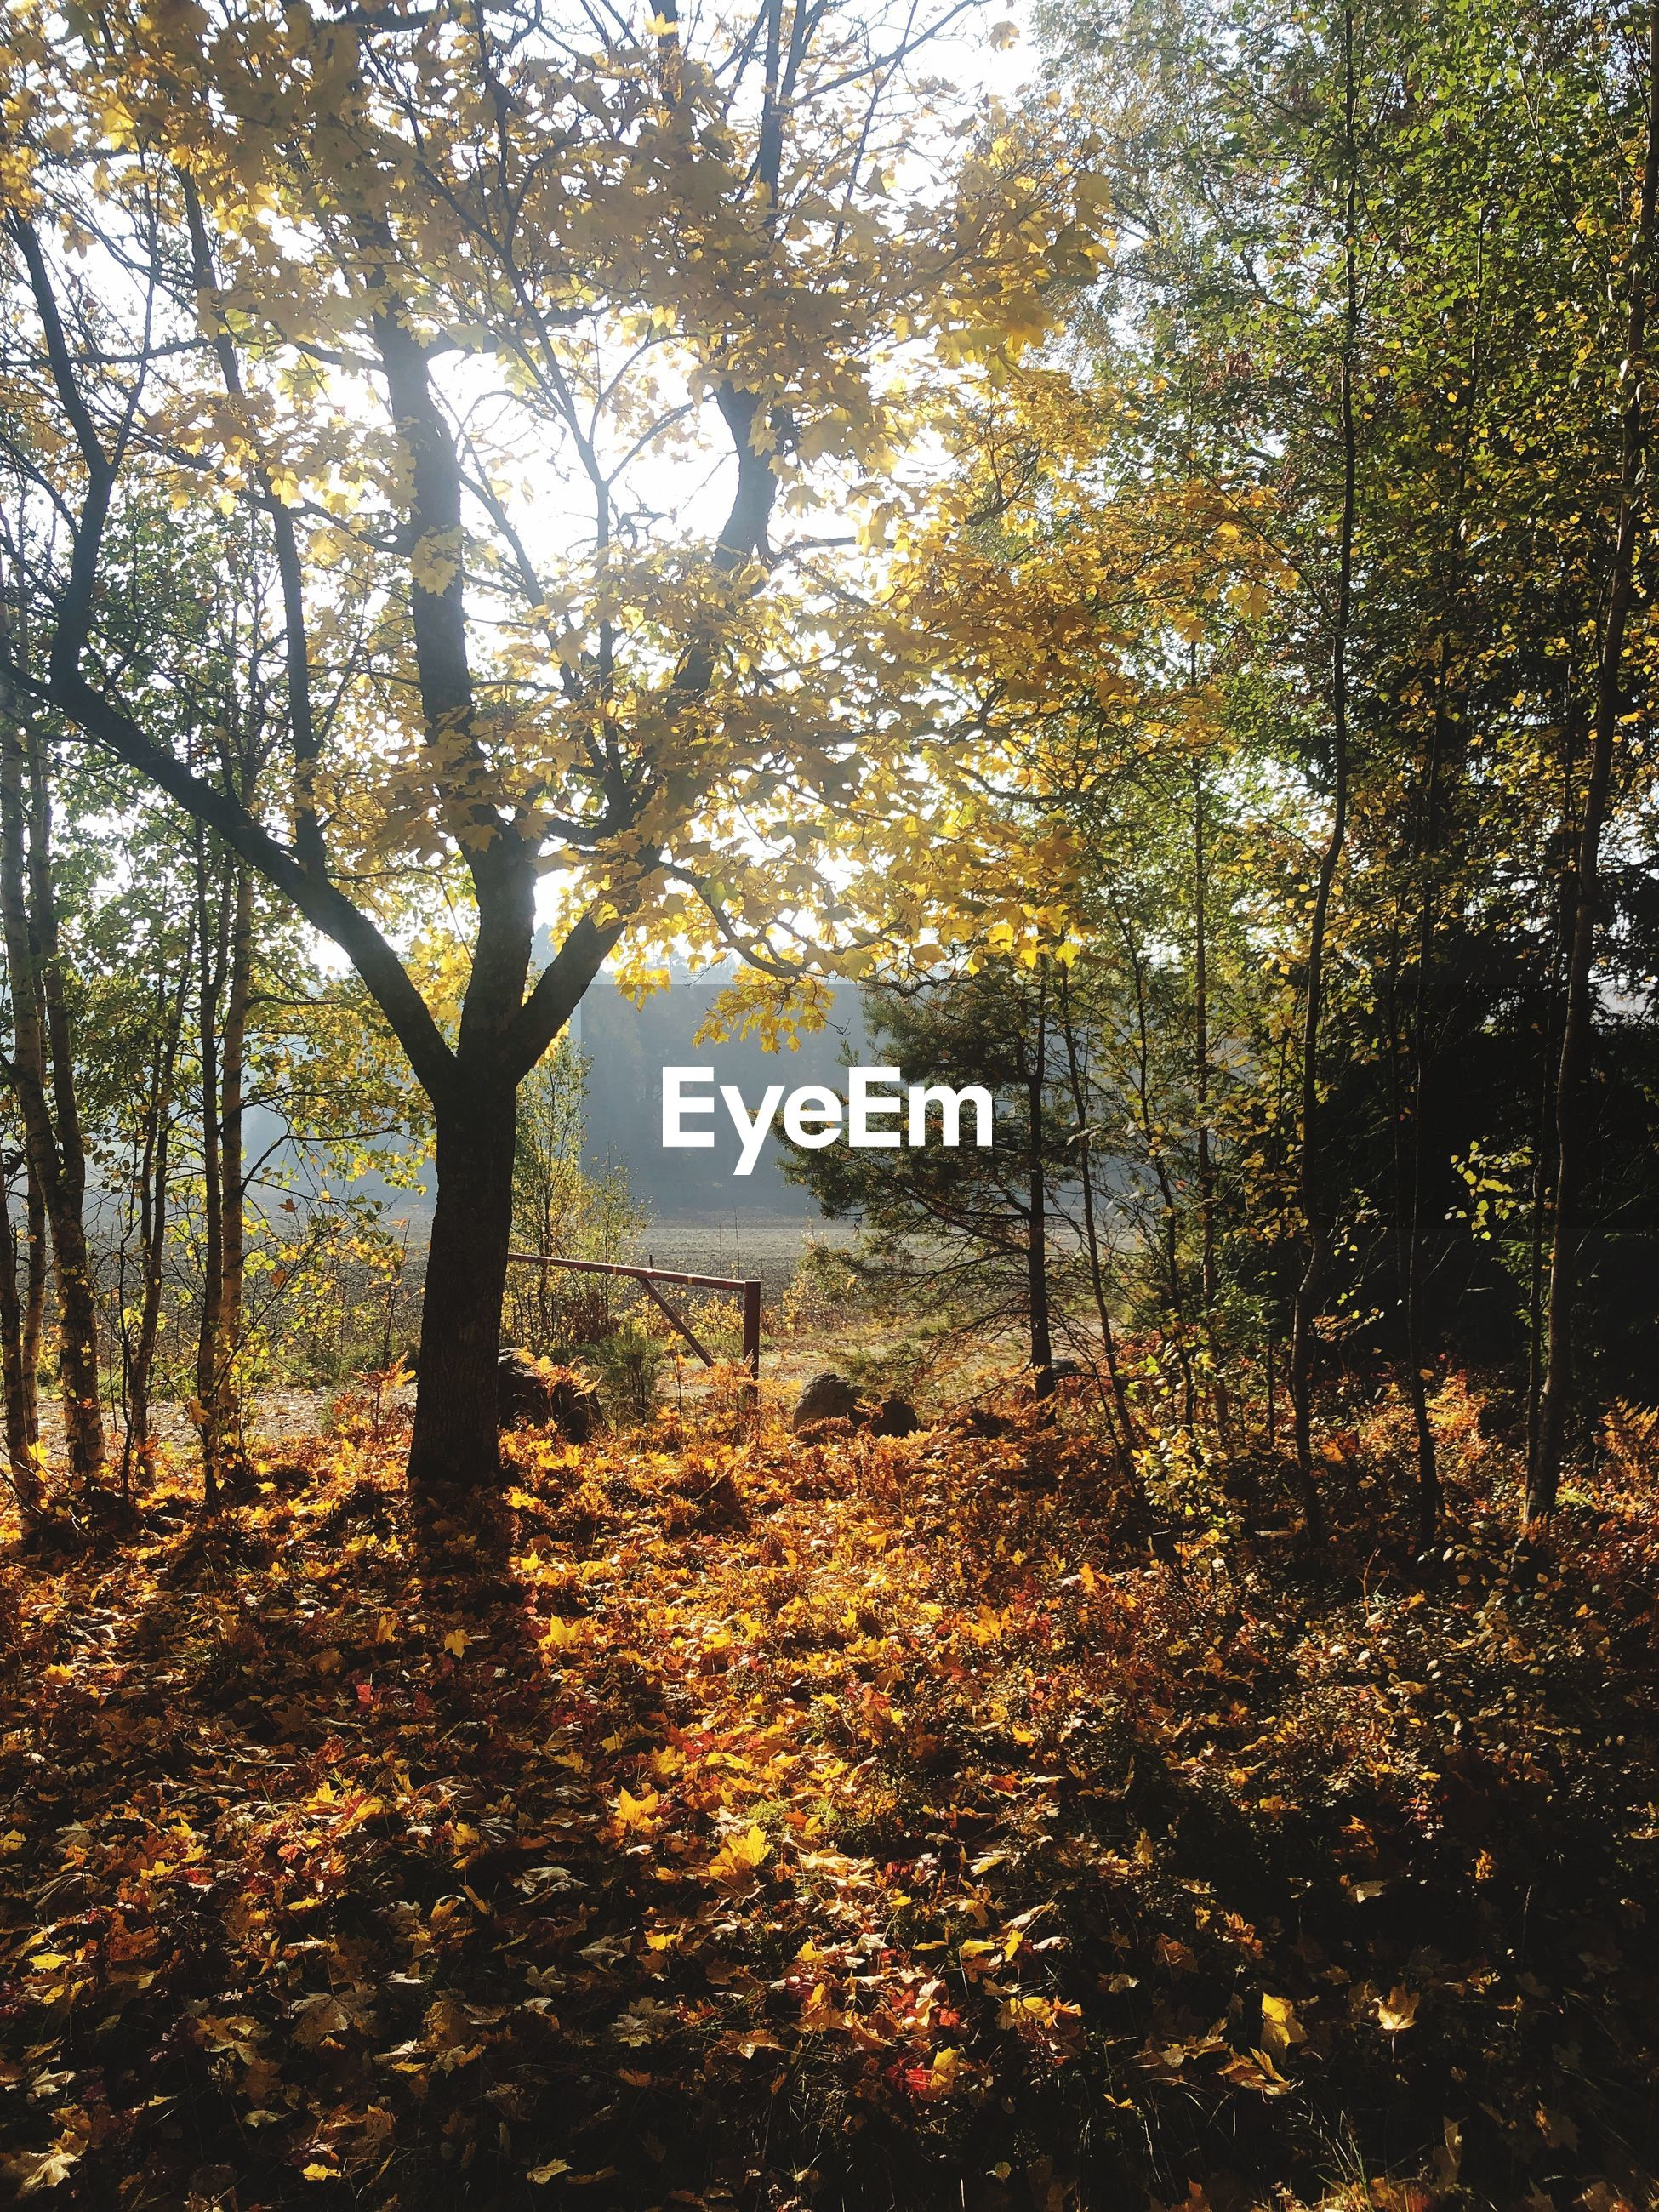 tree, forest, plant, land, autumn, nature, beauty in nature, tranquility, change, day, tranquil scene, sunlight, no people, growth, leaf, plant part, outdoors, non-urban scene, scenics - nature, orange color, woodland, leaves, fall, autumn collection